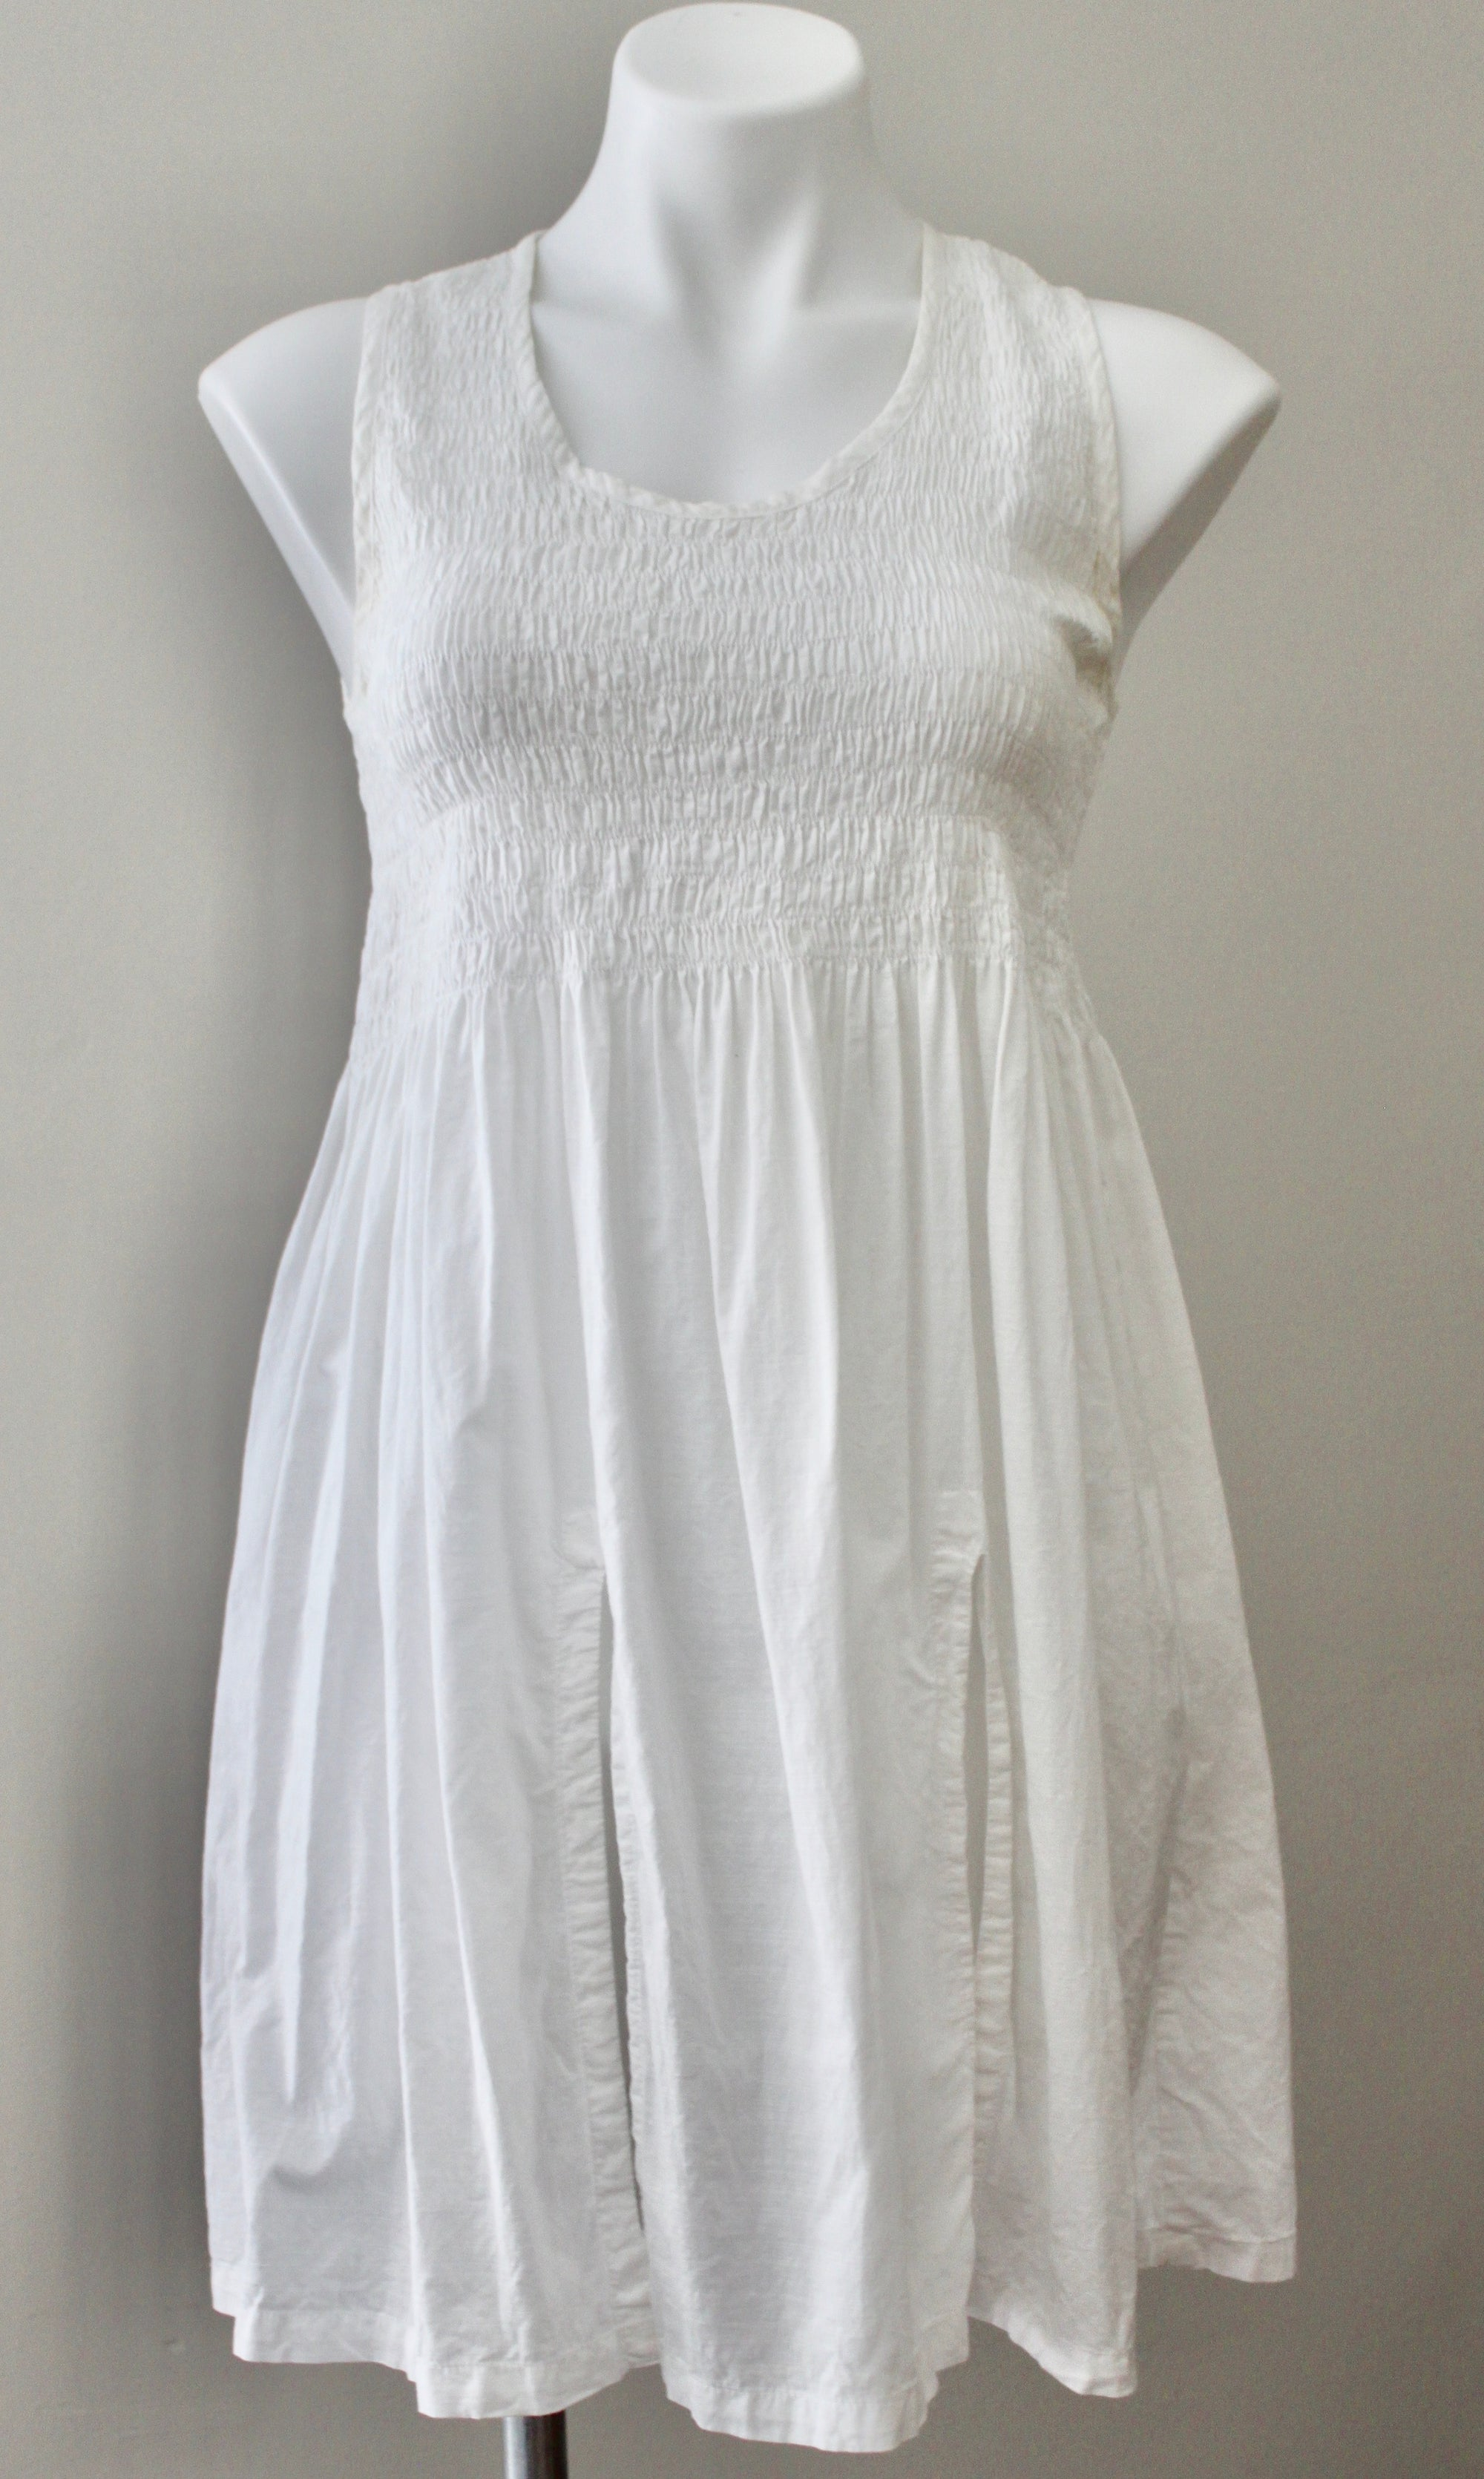 IGUANA light summer white sundress